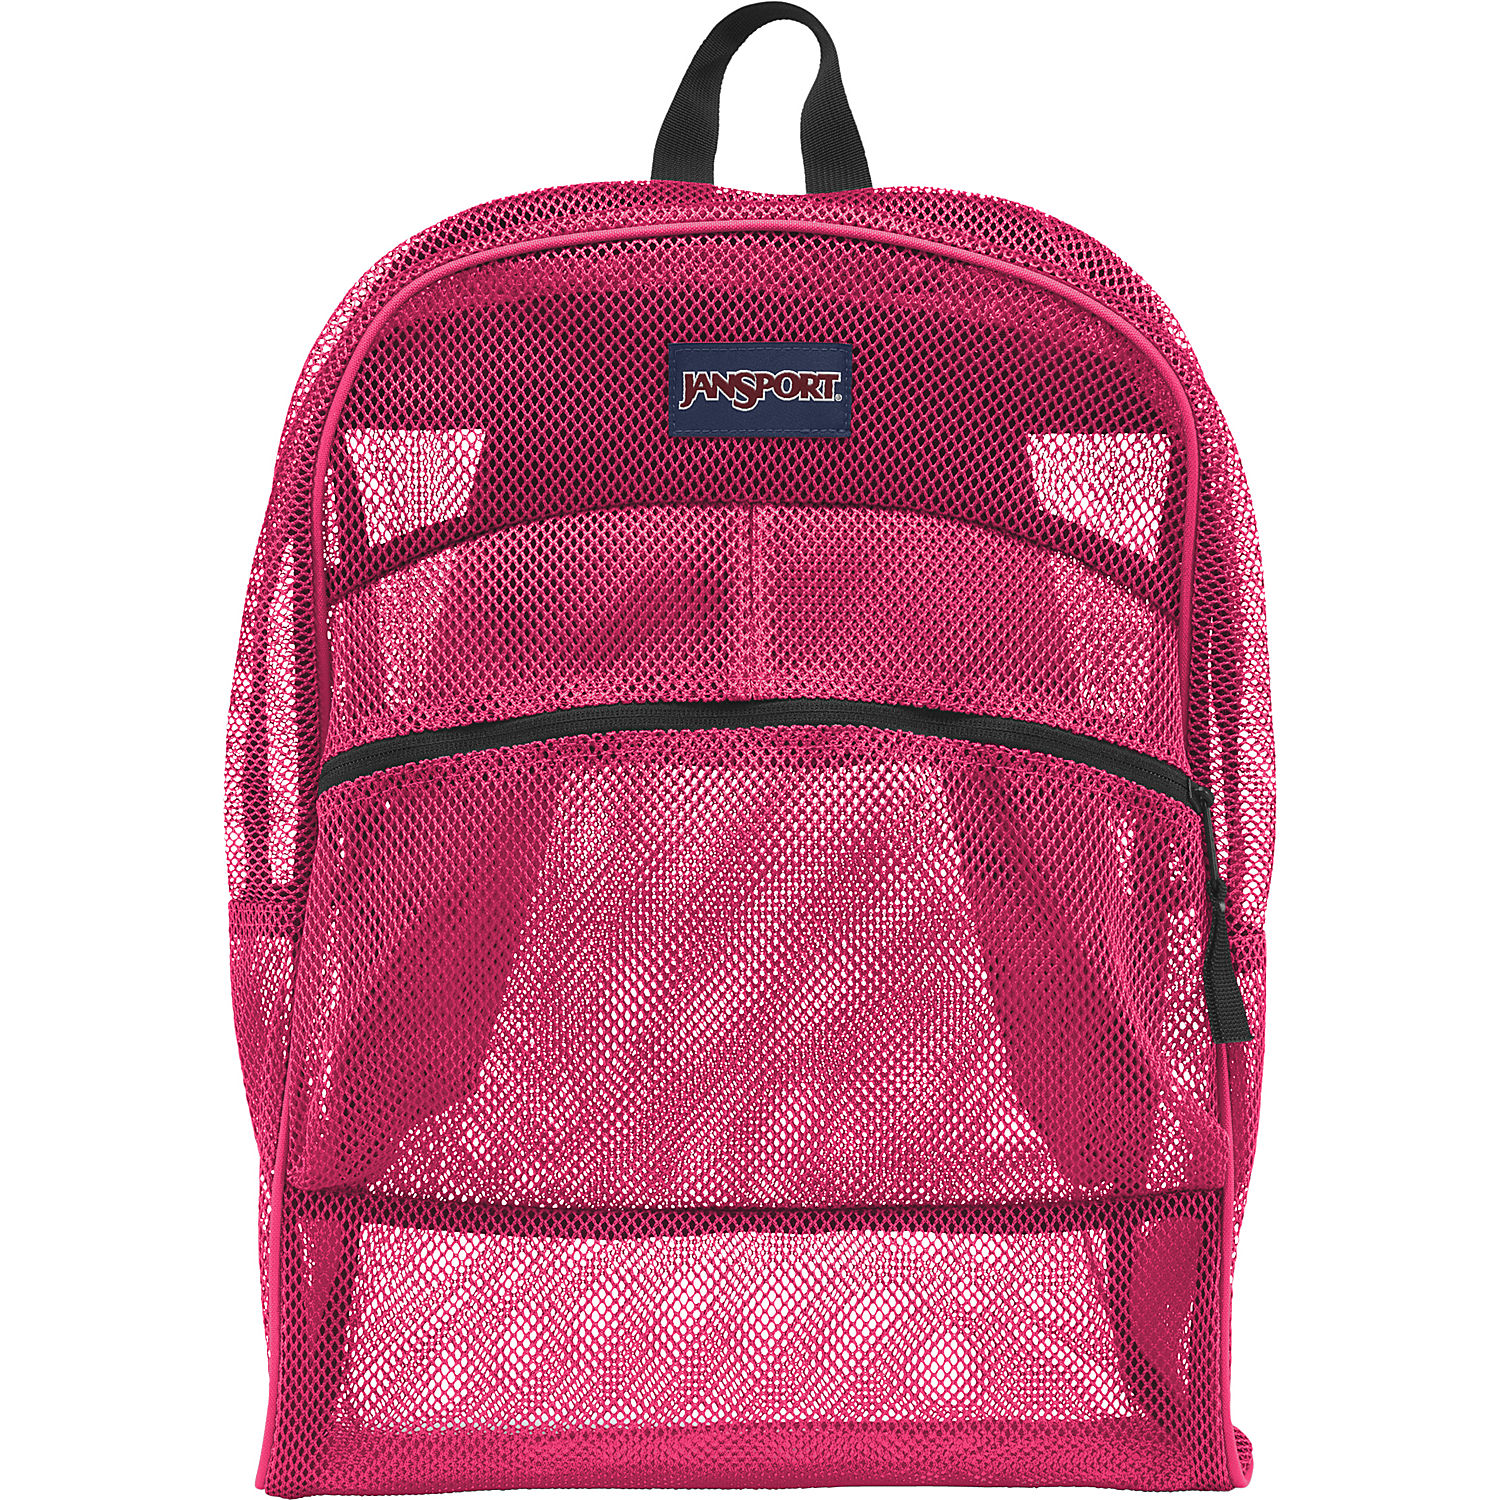 JanSport Mesh Pack School Backpack - Pink Tulip